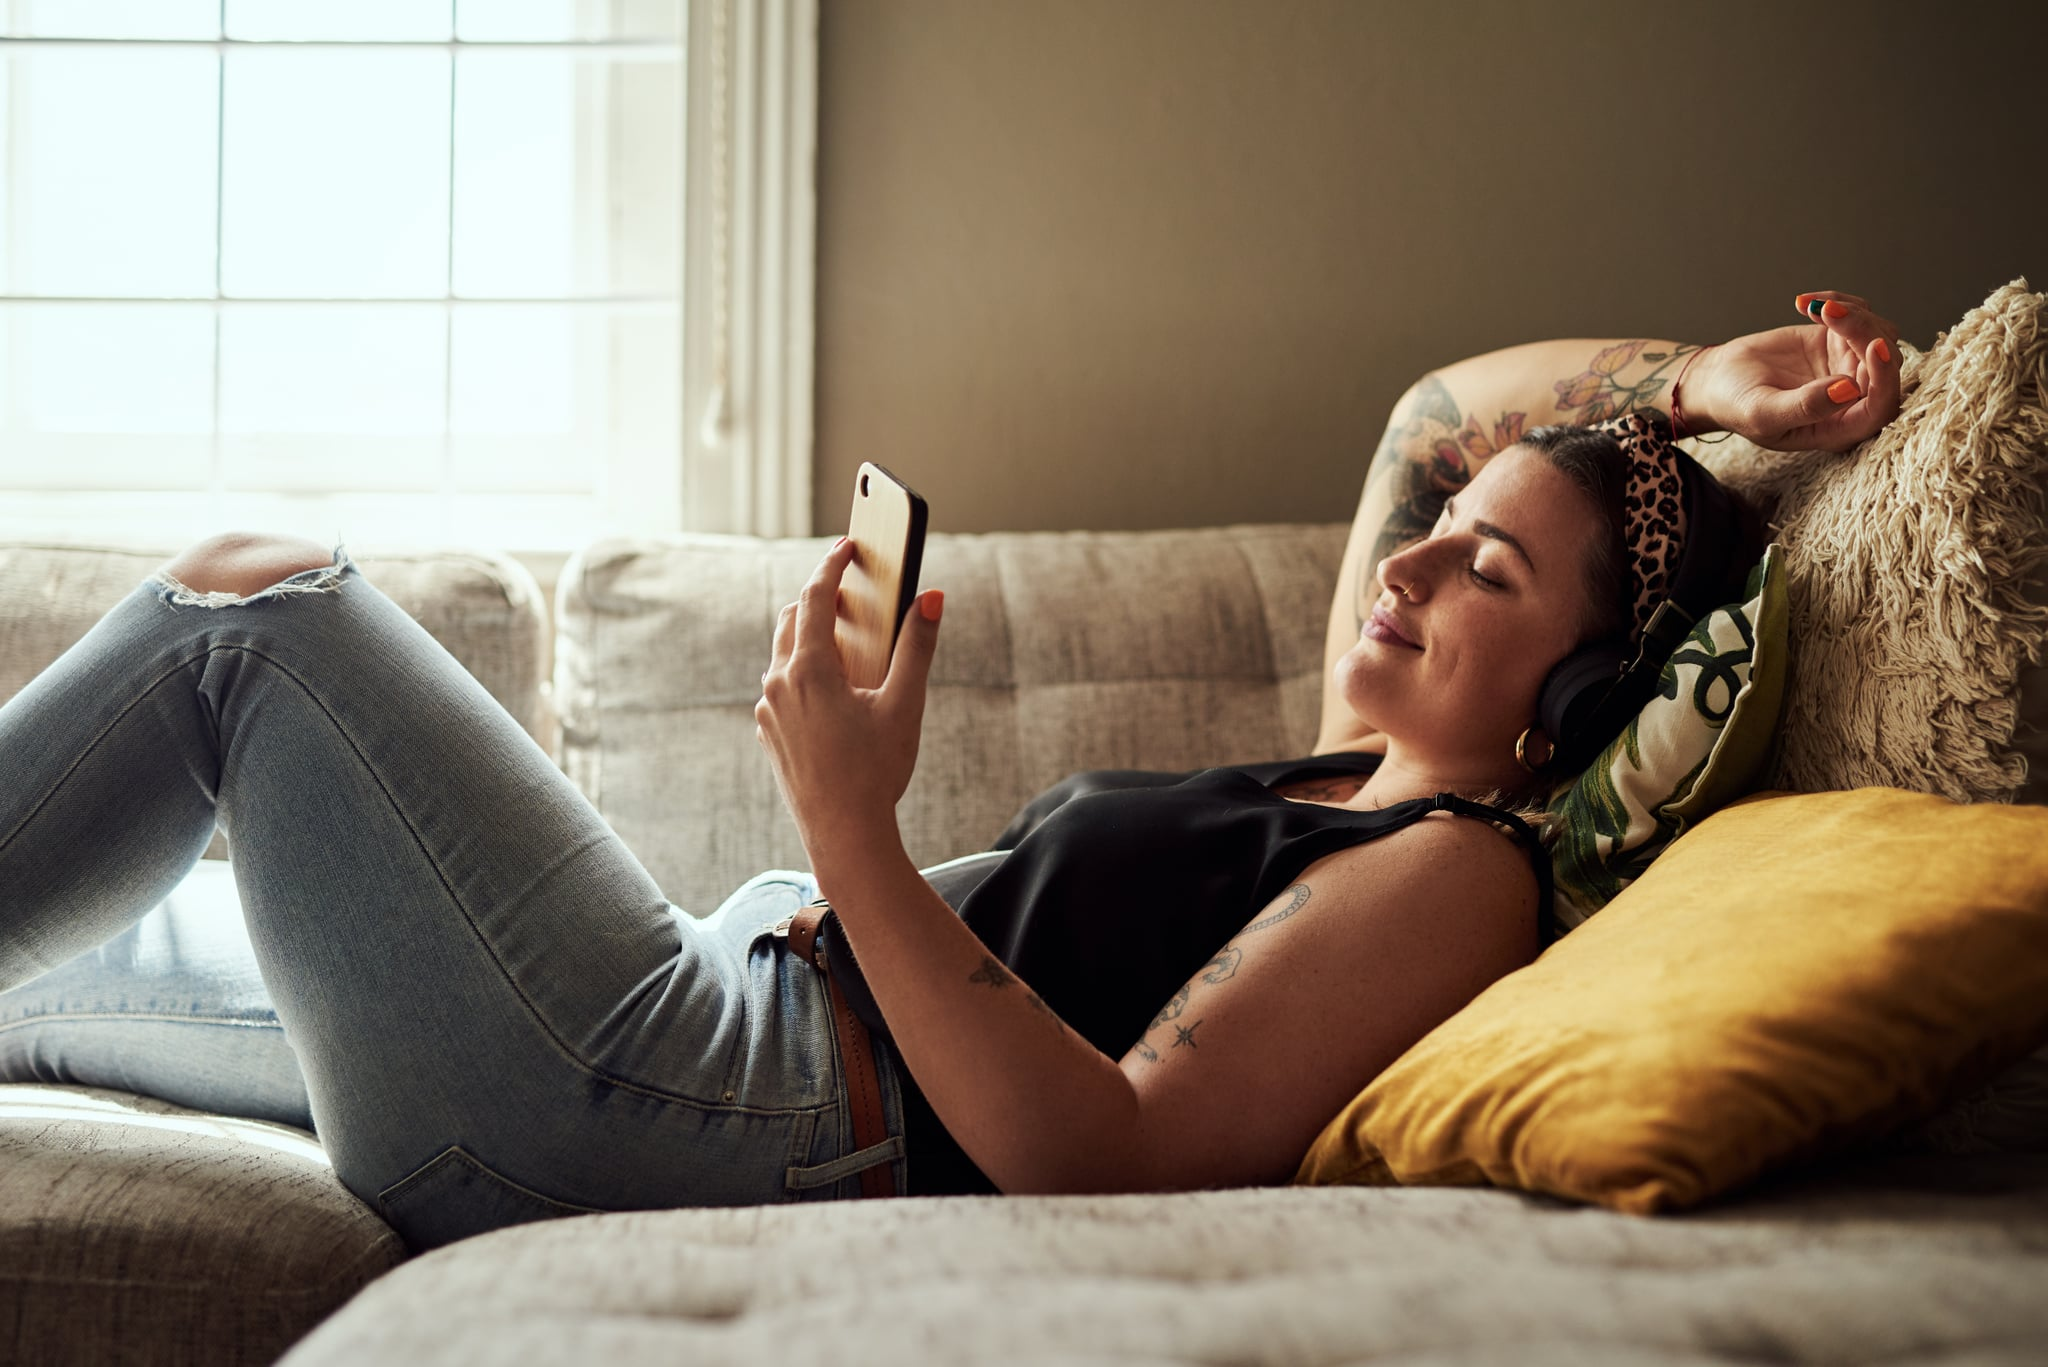 Shot of a young woman using a smartphone and headphones on the sofa at home